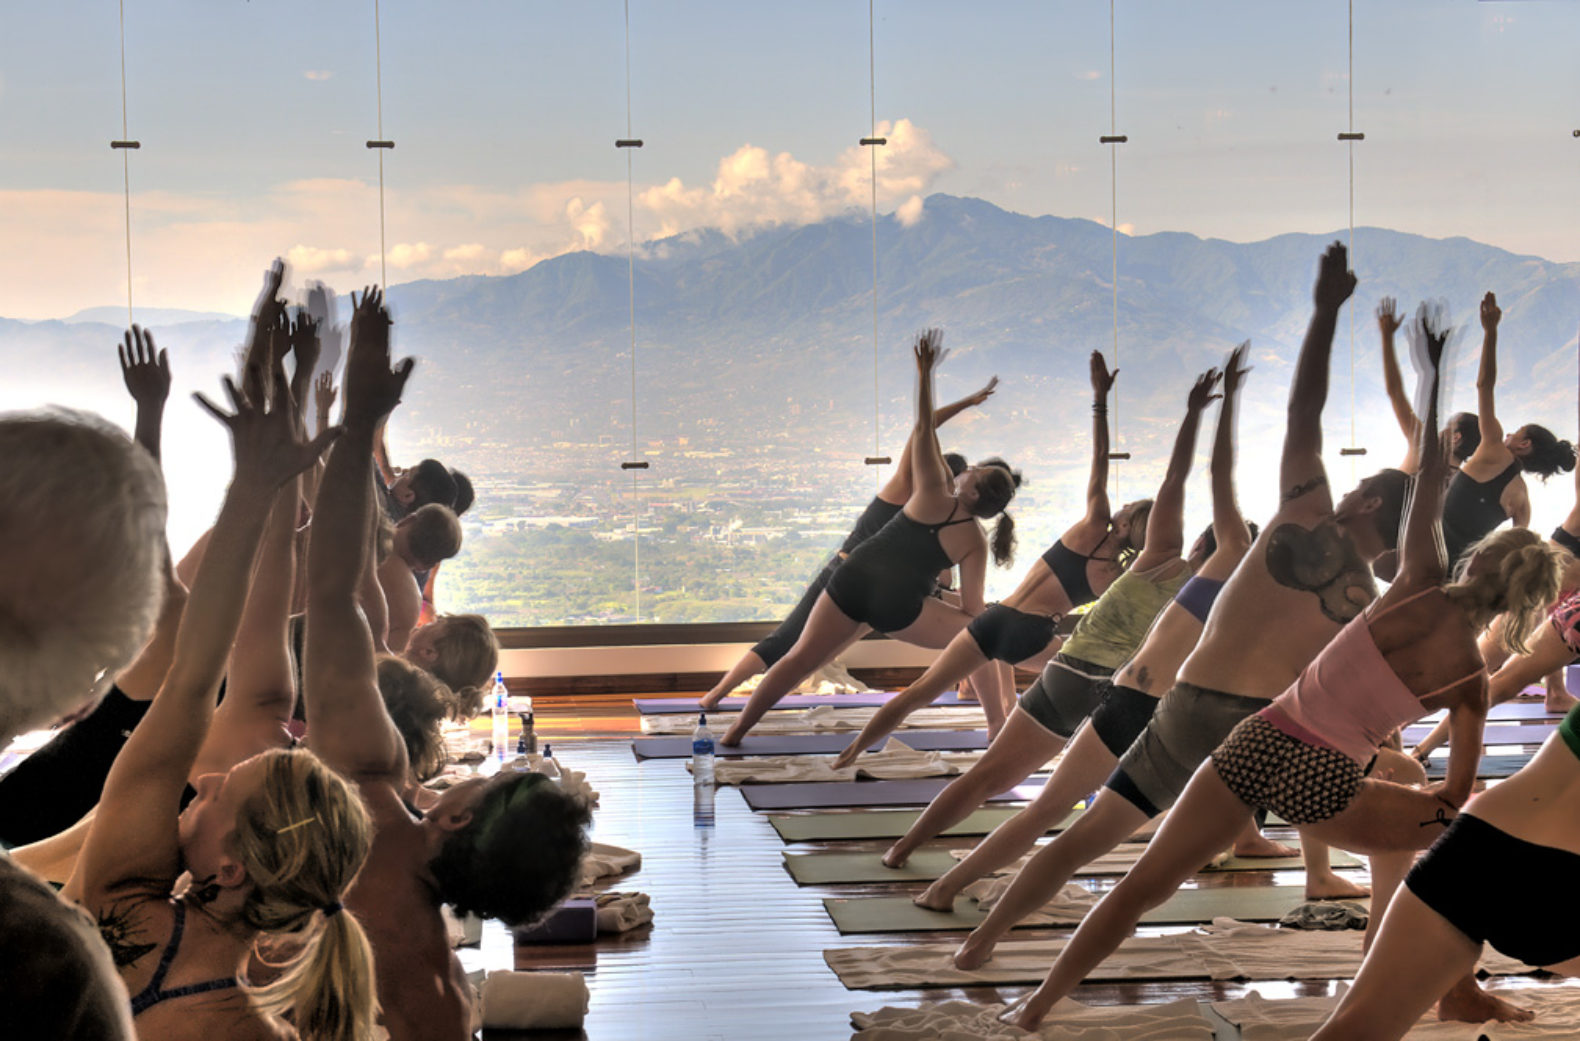 group-yoga-class-stretching-breathing-mountain-air-panorama-view-scenery-pura-vida-retreat-spa-costa-rica